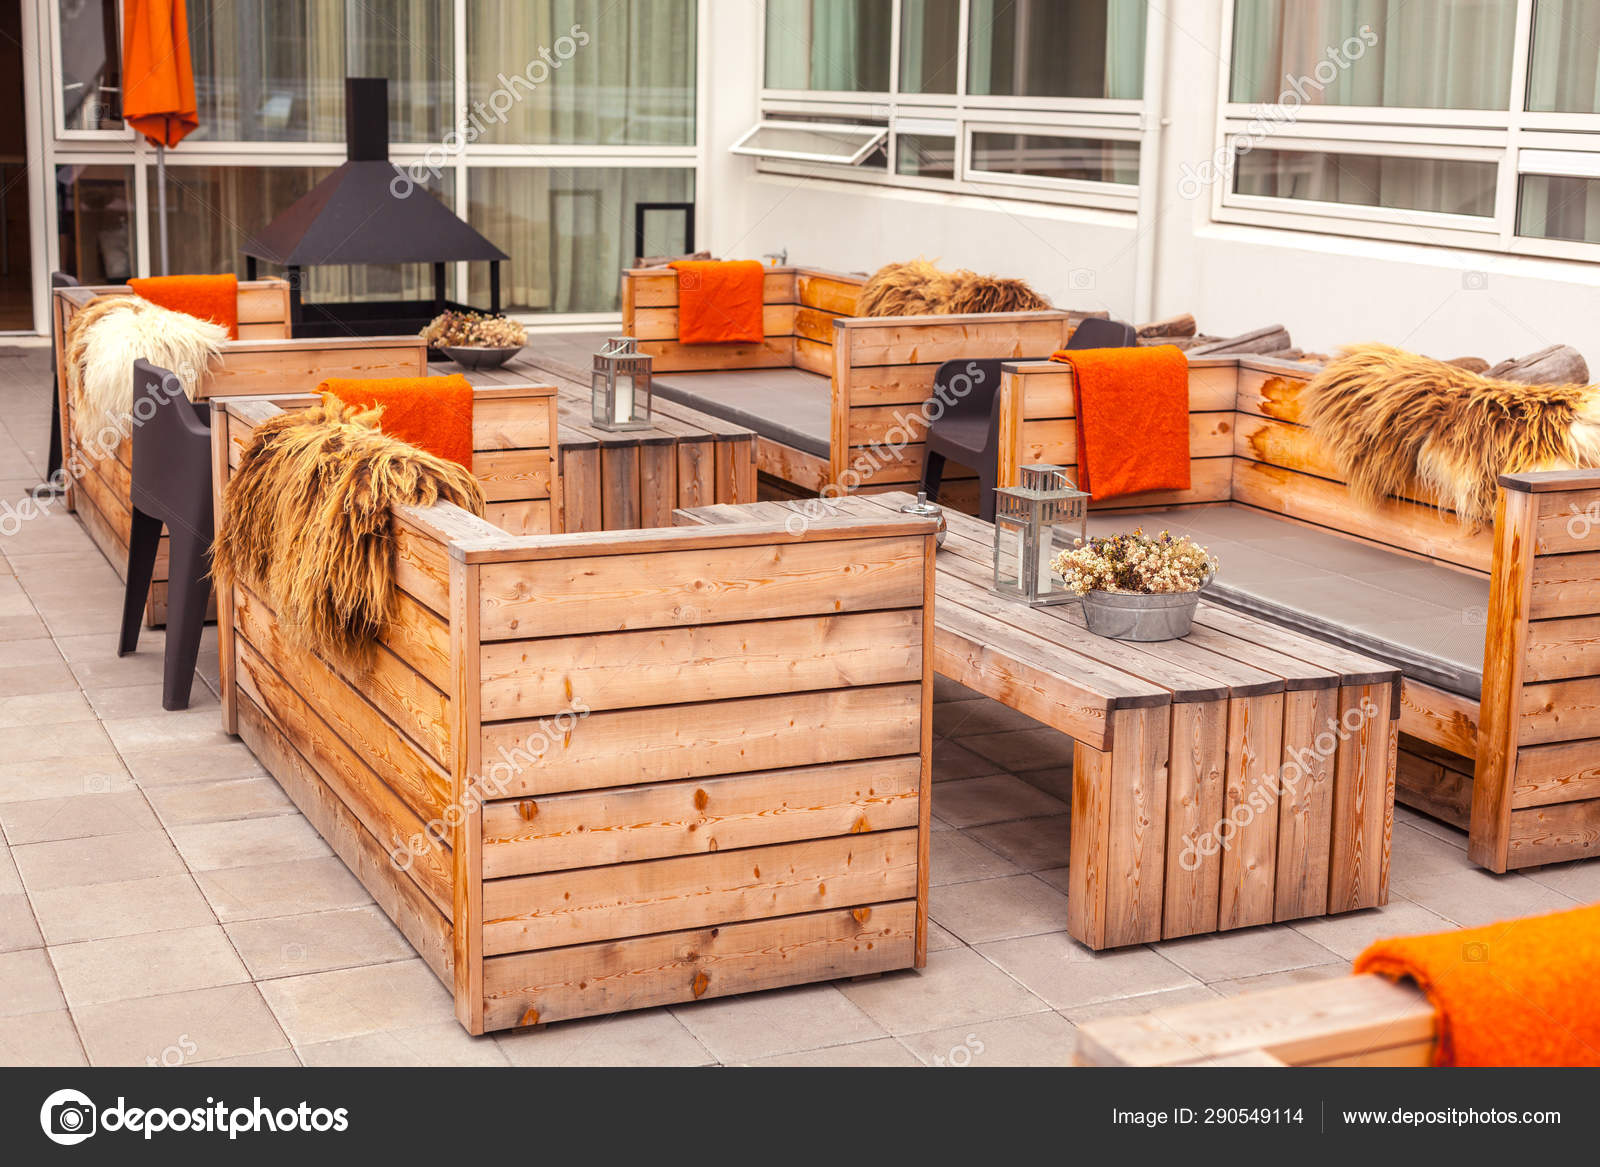 Outdoor Restaurant Terrace With Wooden Furniture Stock Photo C Dvoevnore 290549114